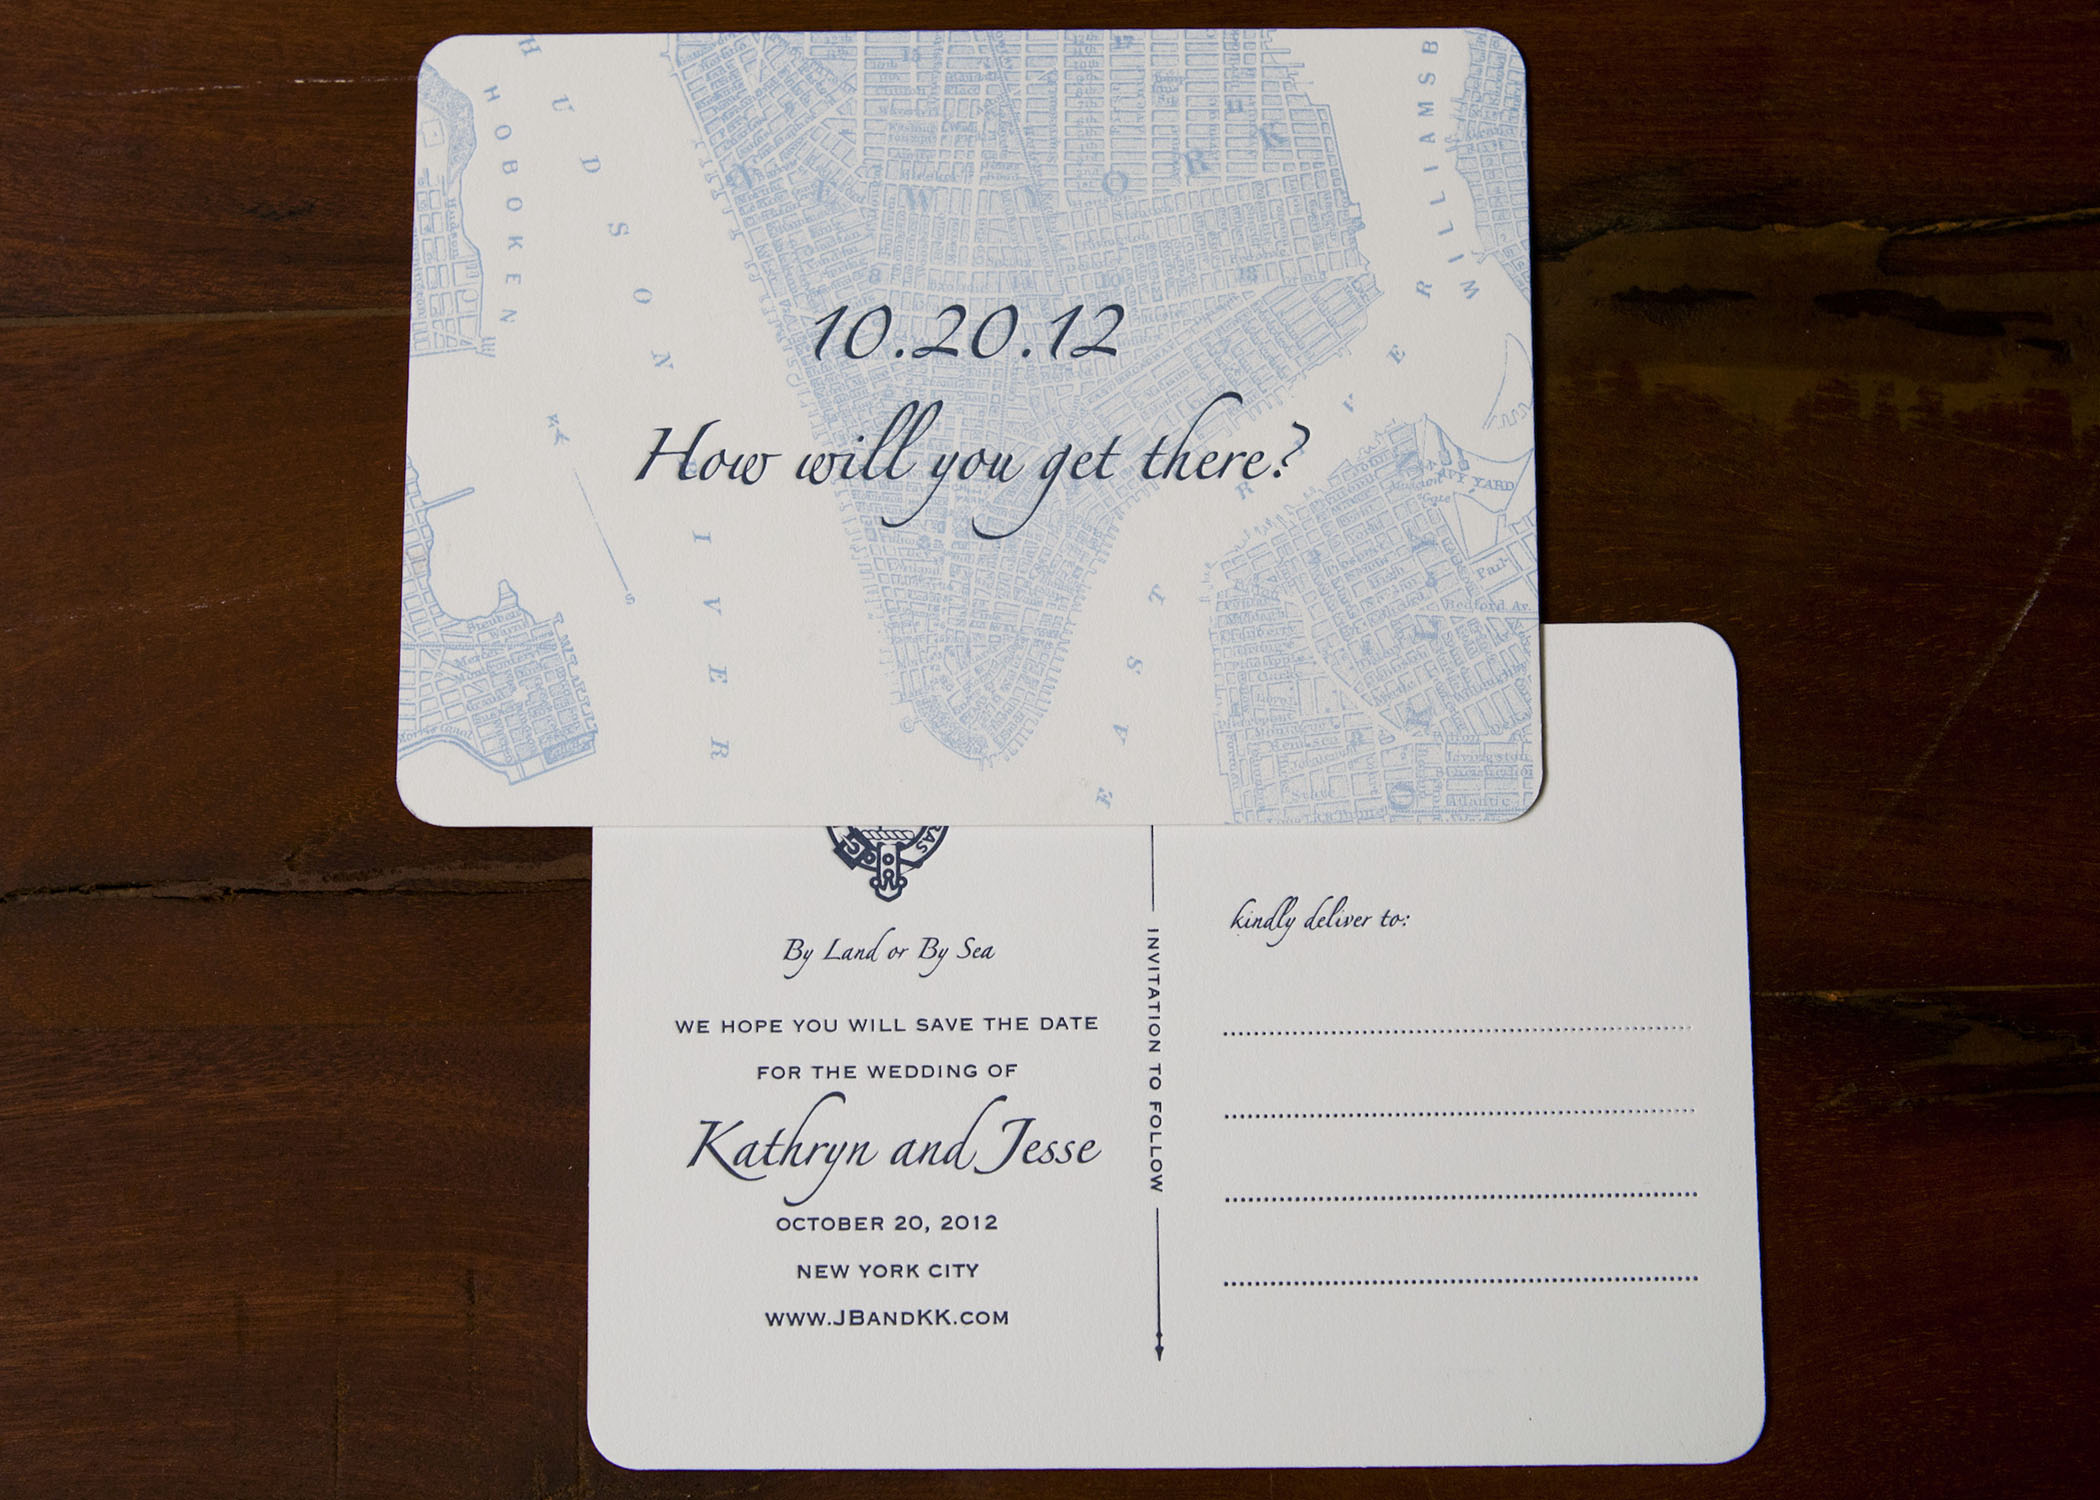 wedding-invitations-adoring-save-the-date-cards-lovable-invites-newlywed-free-save-the-date-cards-for-the-best-day-of-your-life-make-your-own-free-save-the-date-cards-print-cards-cheap